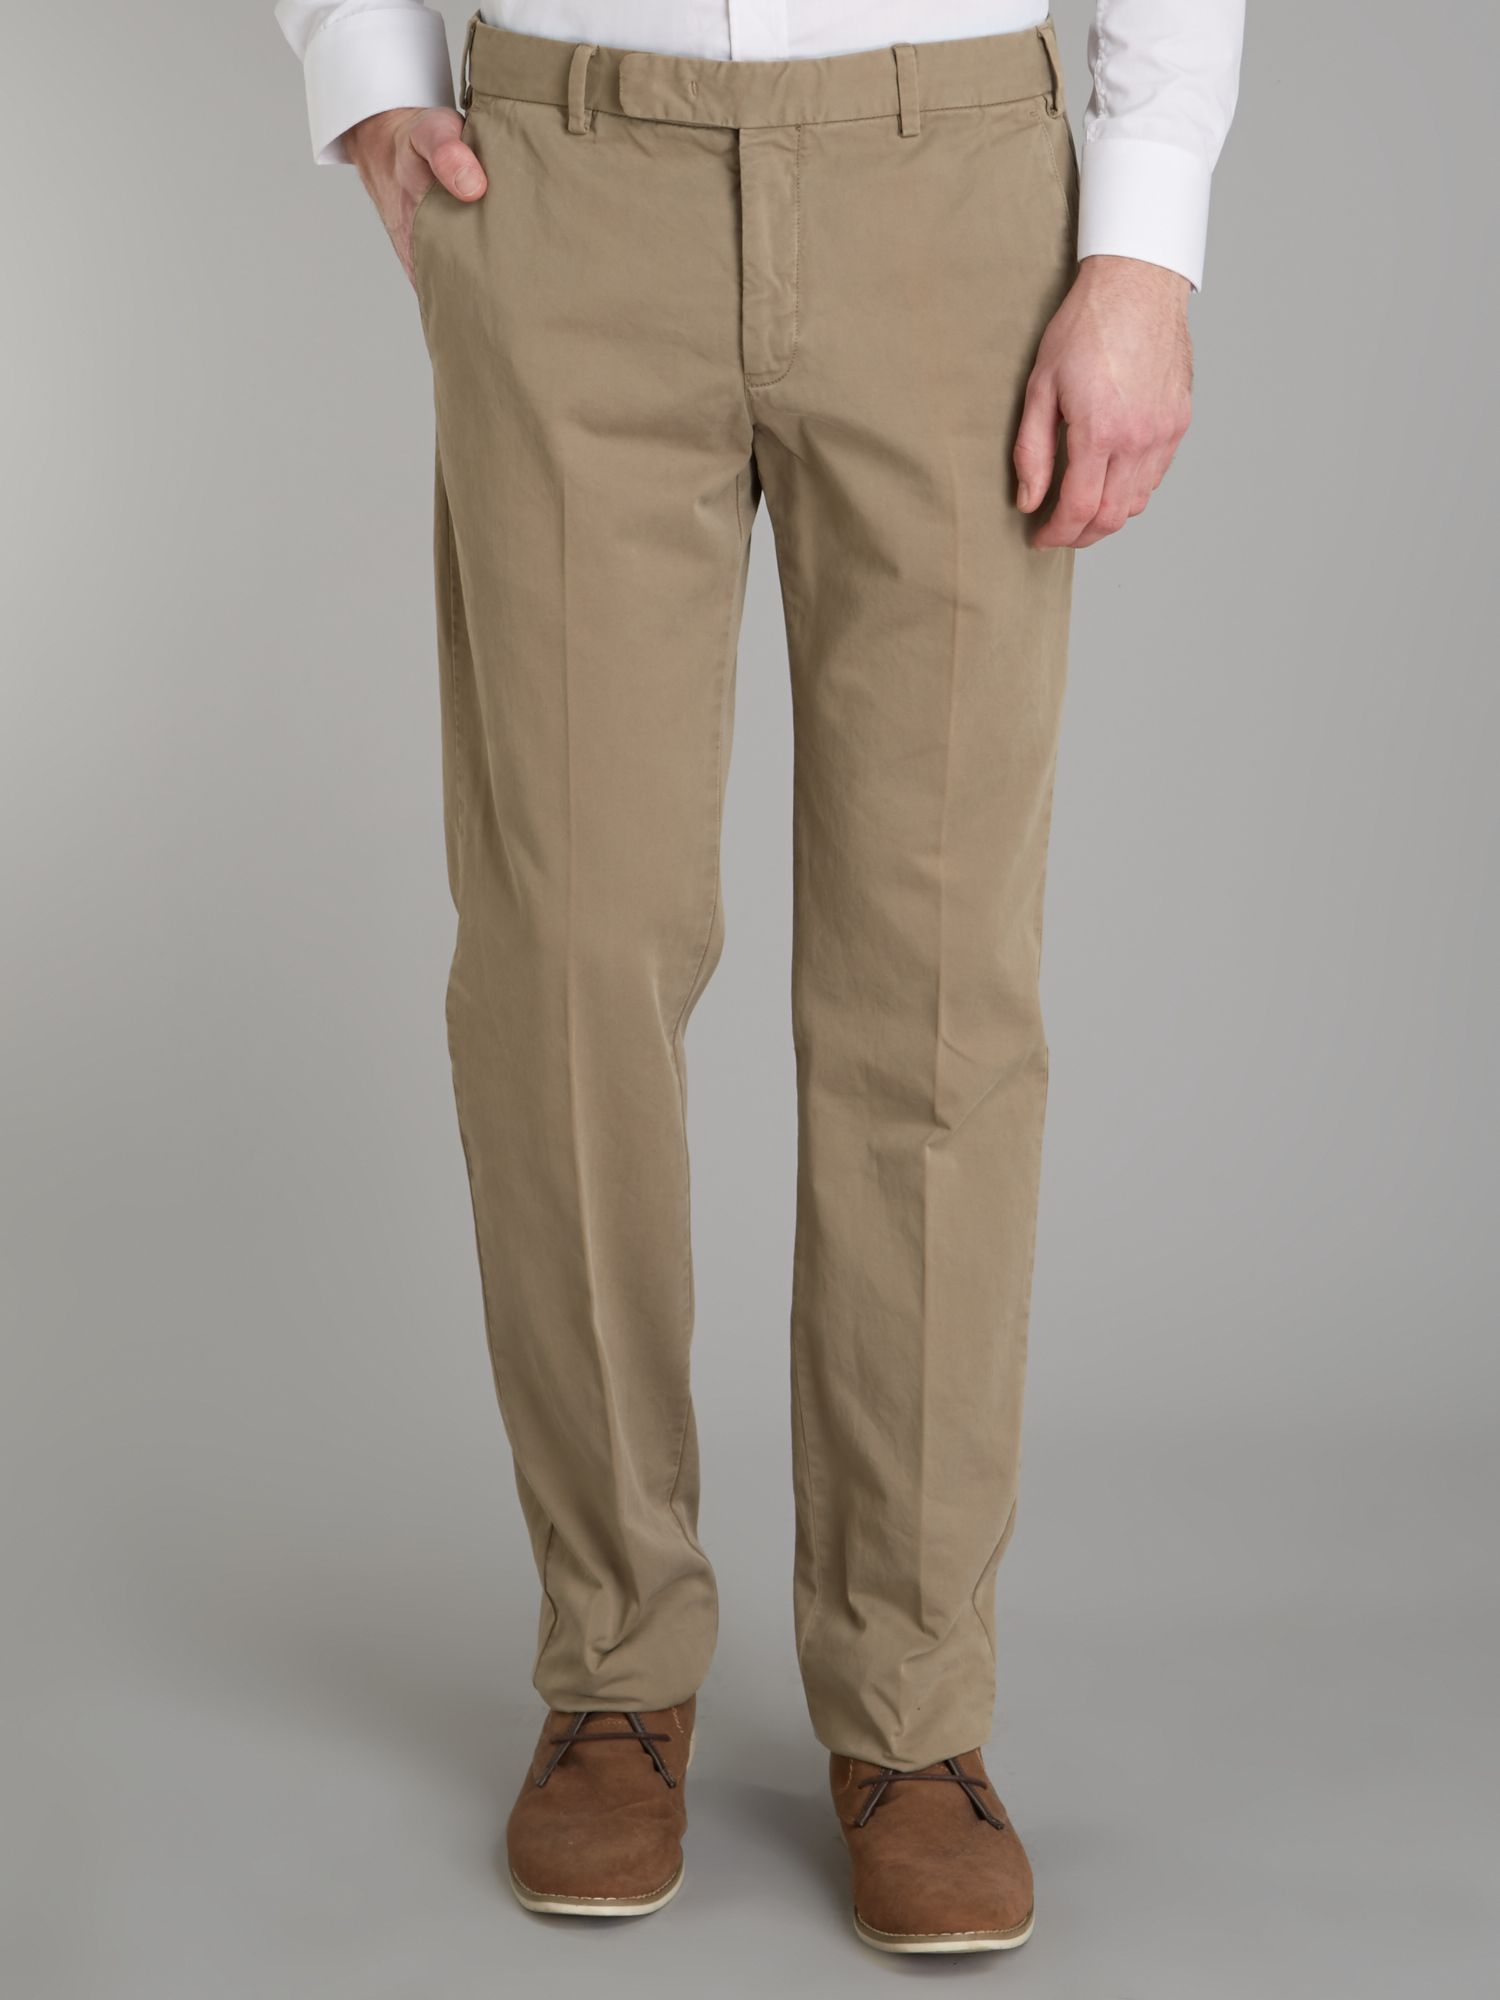 Four pocket slim fit chinos